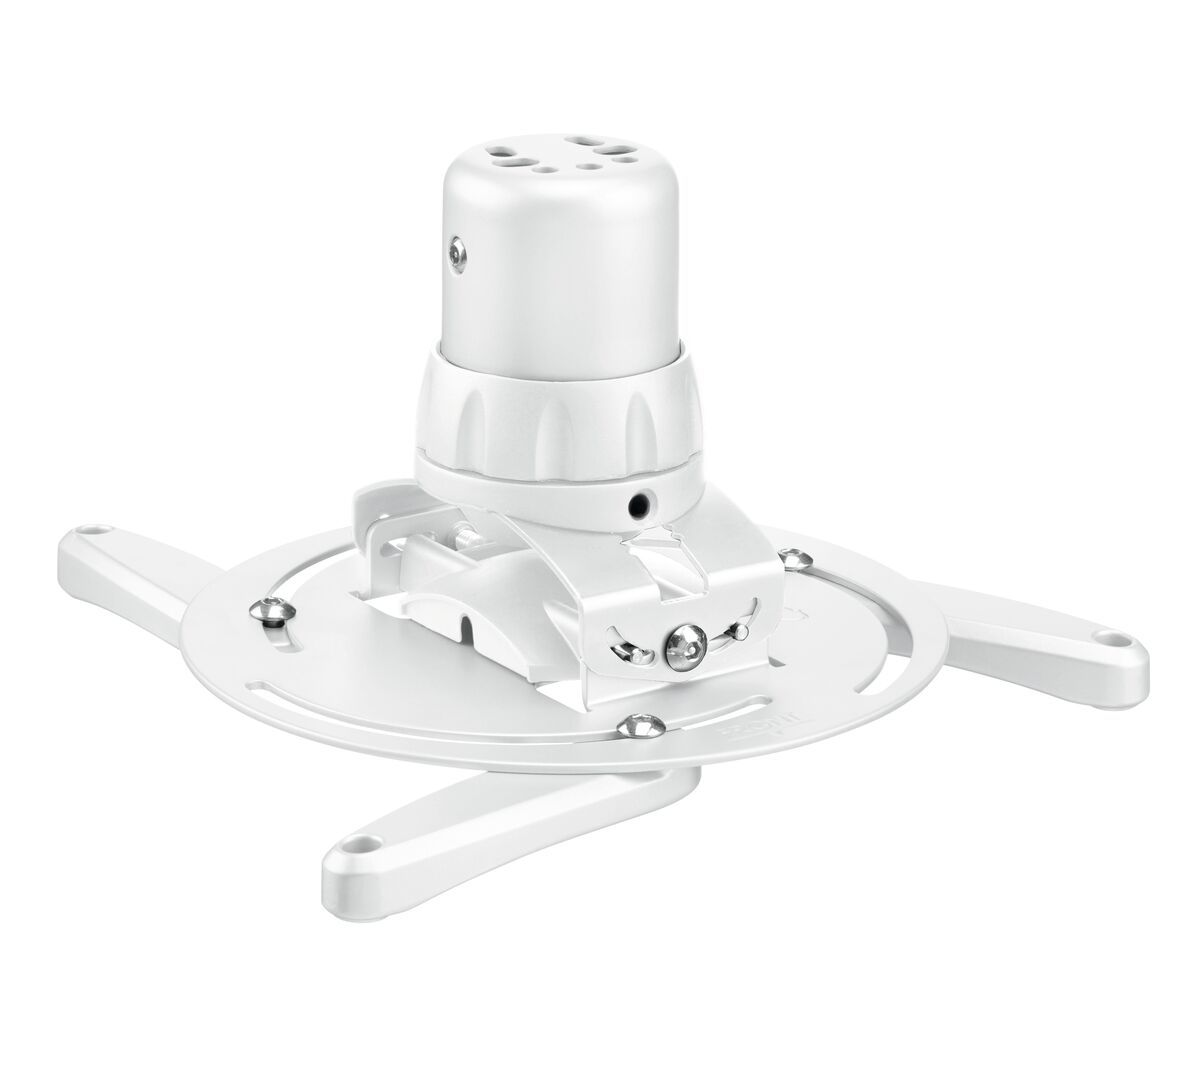 Vogel's PPC 1500 Projector ceiling mount white - Product